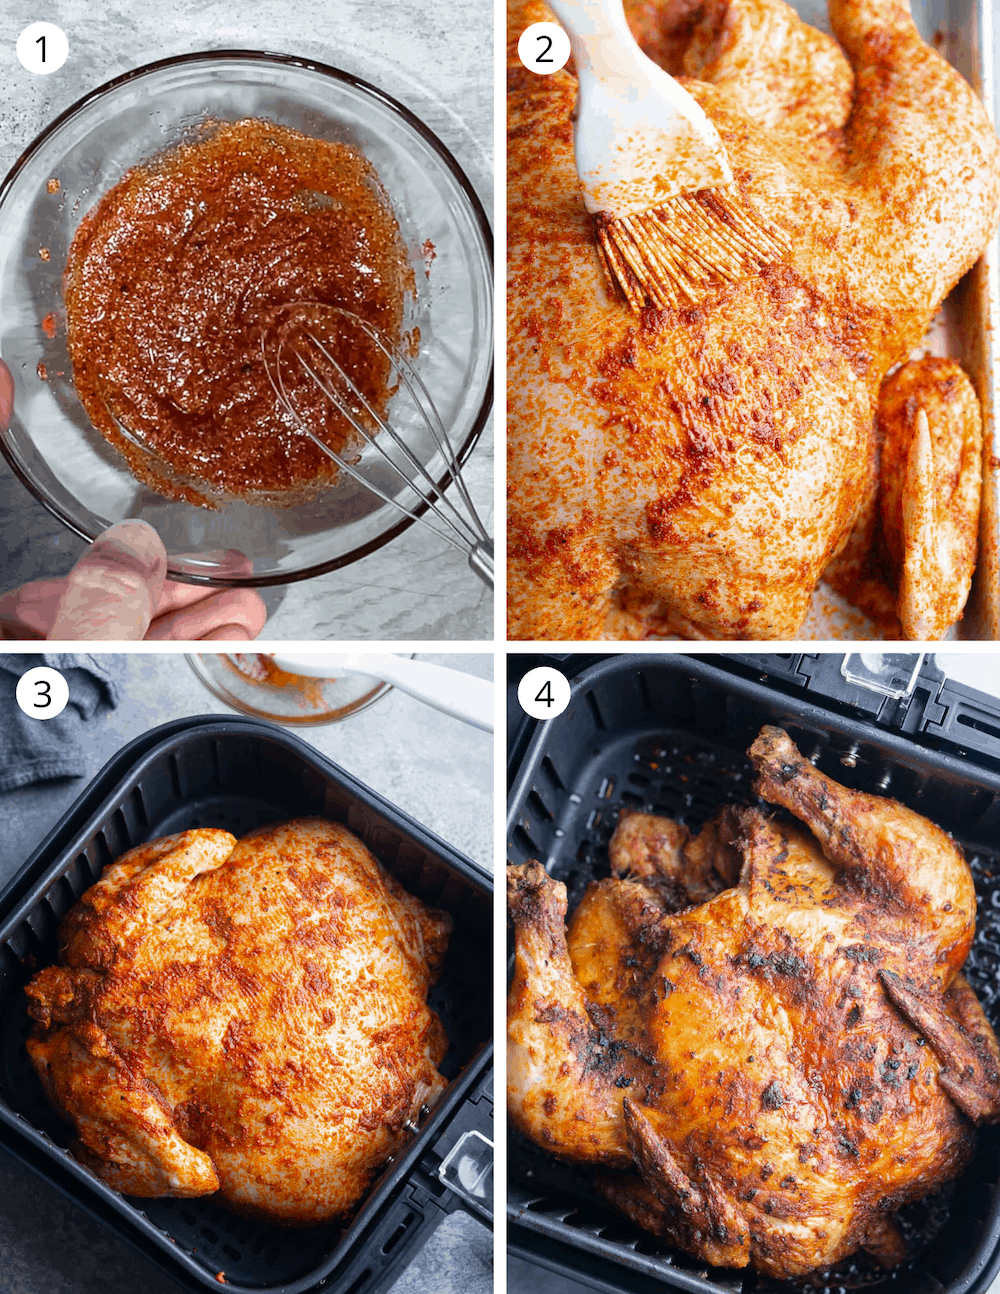 step by step process of how to cook whole chicken in an air fryer